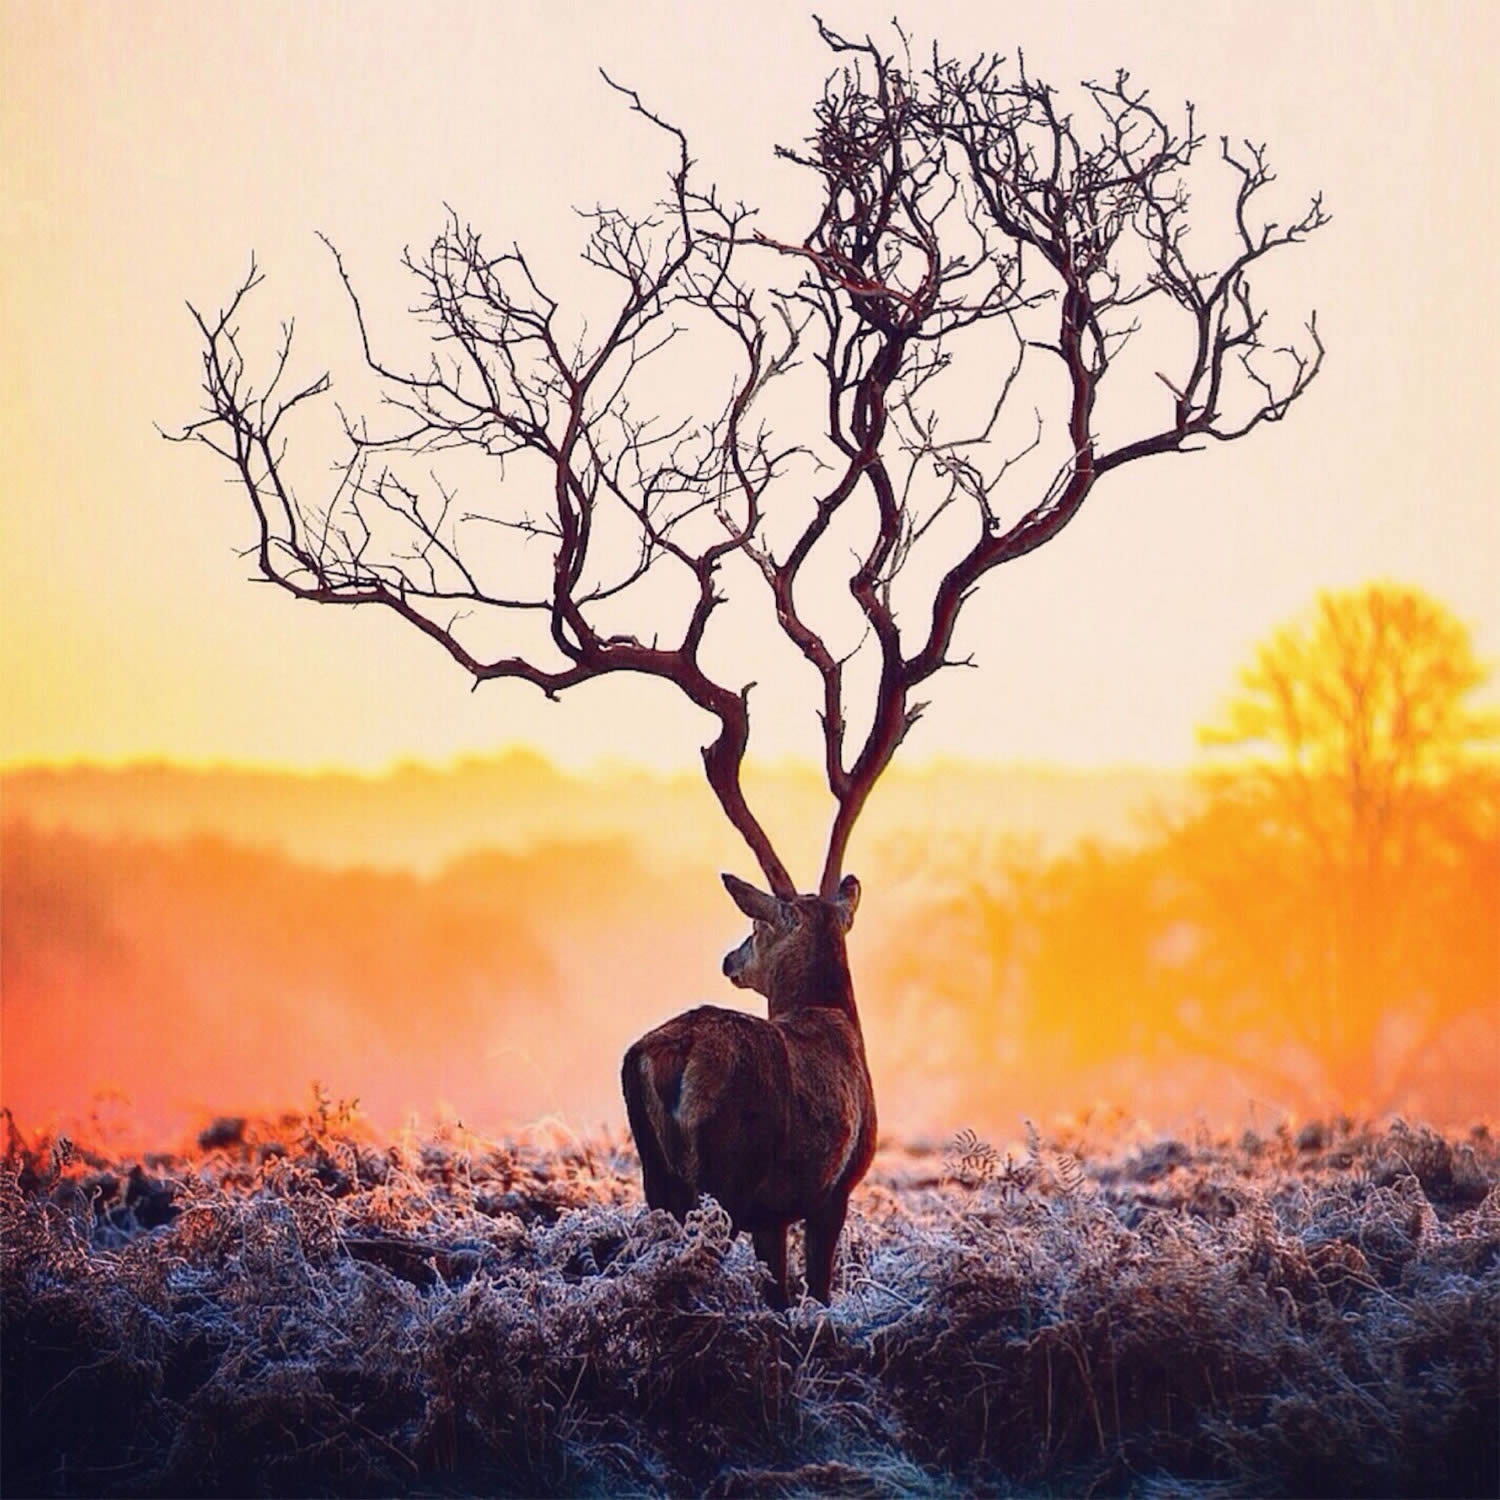 robert jahns surreal digital photo edit deer with tree antlers